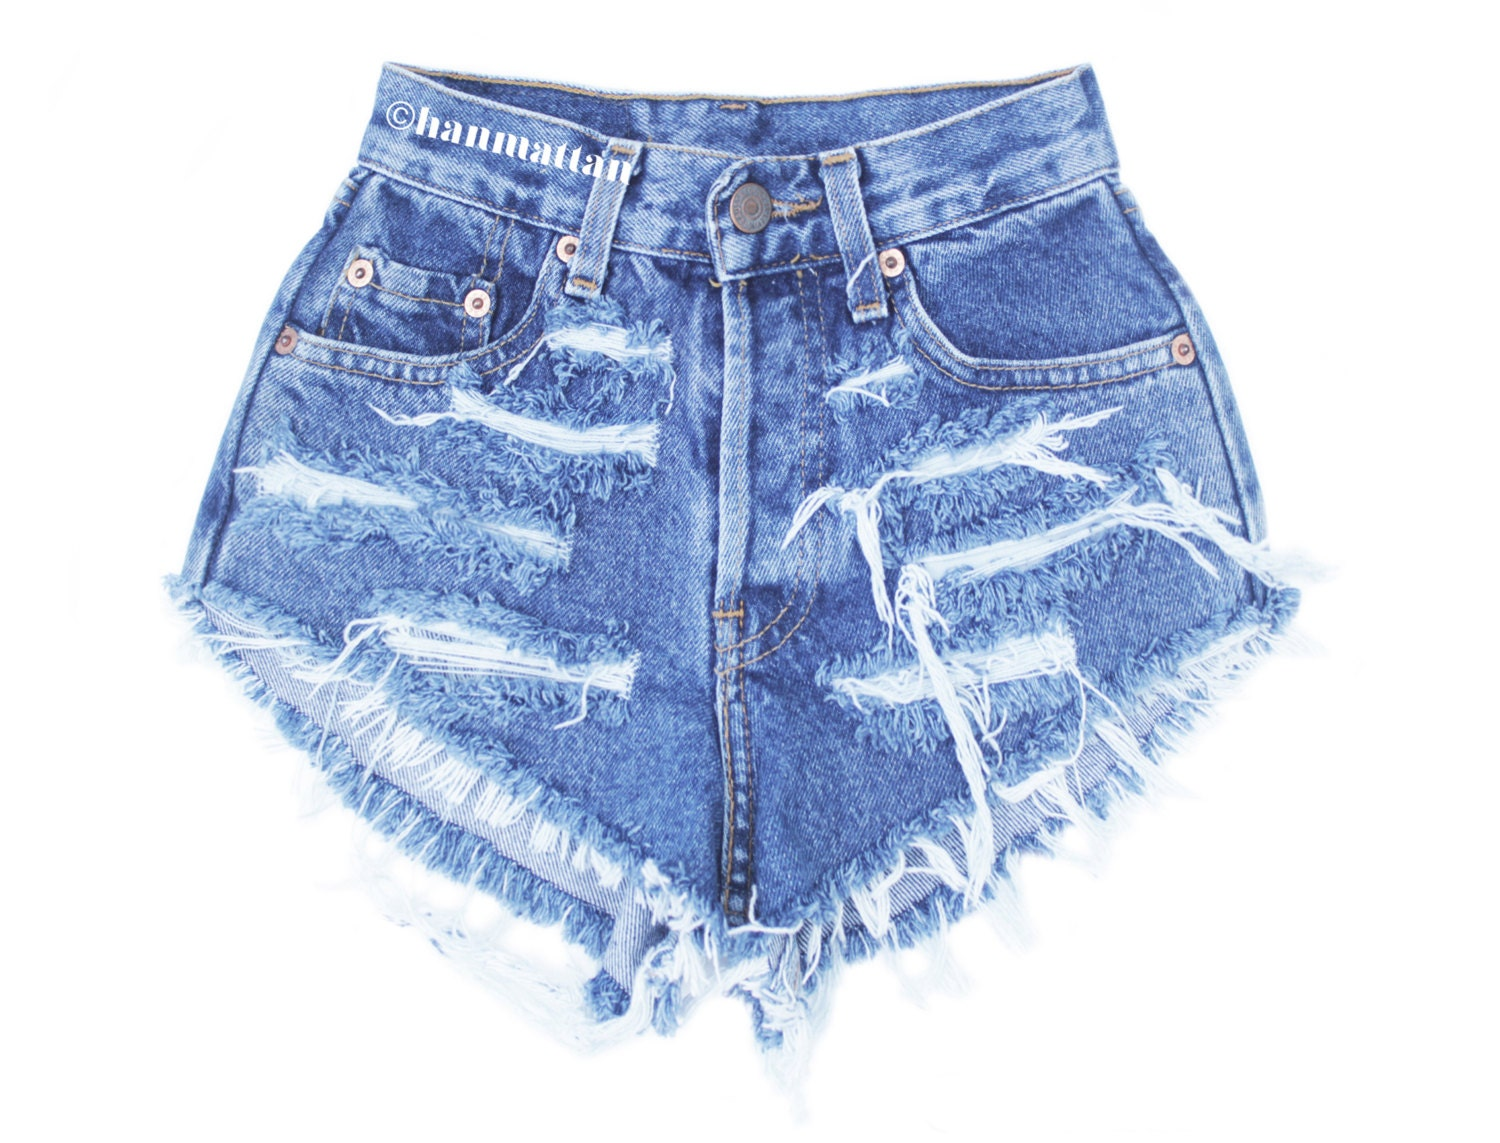 ALL SIZES RAGGED Vintage Levi high-waisted denim